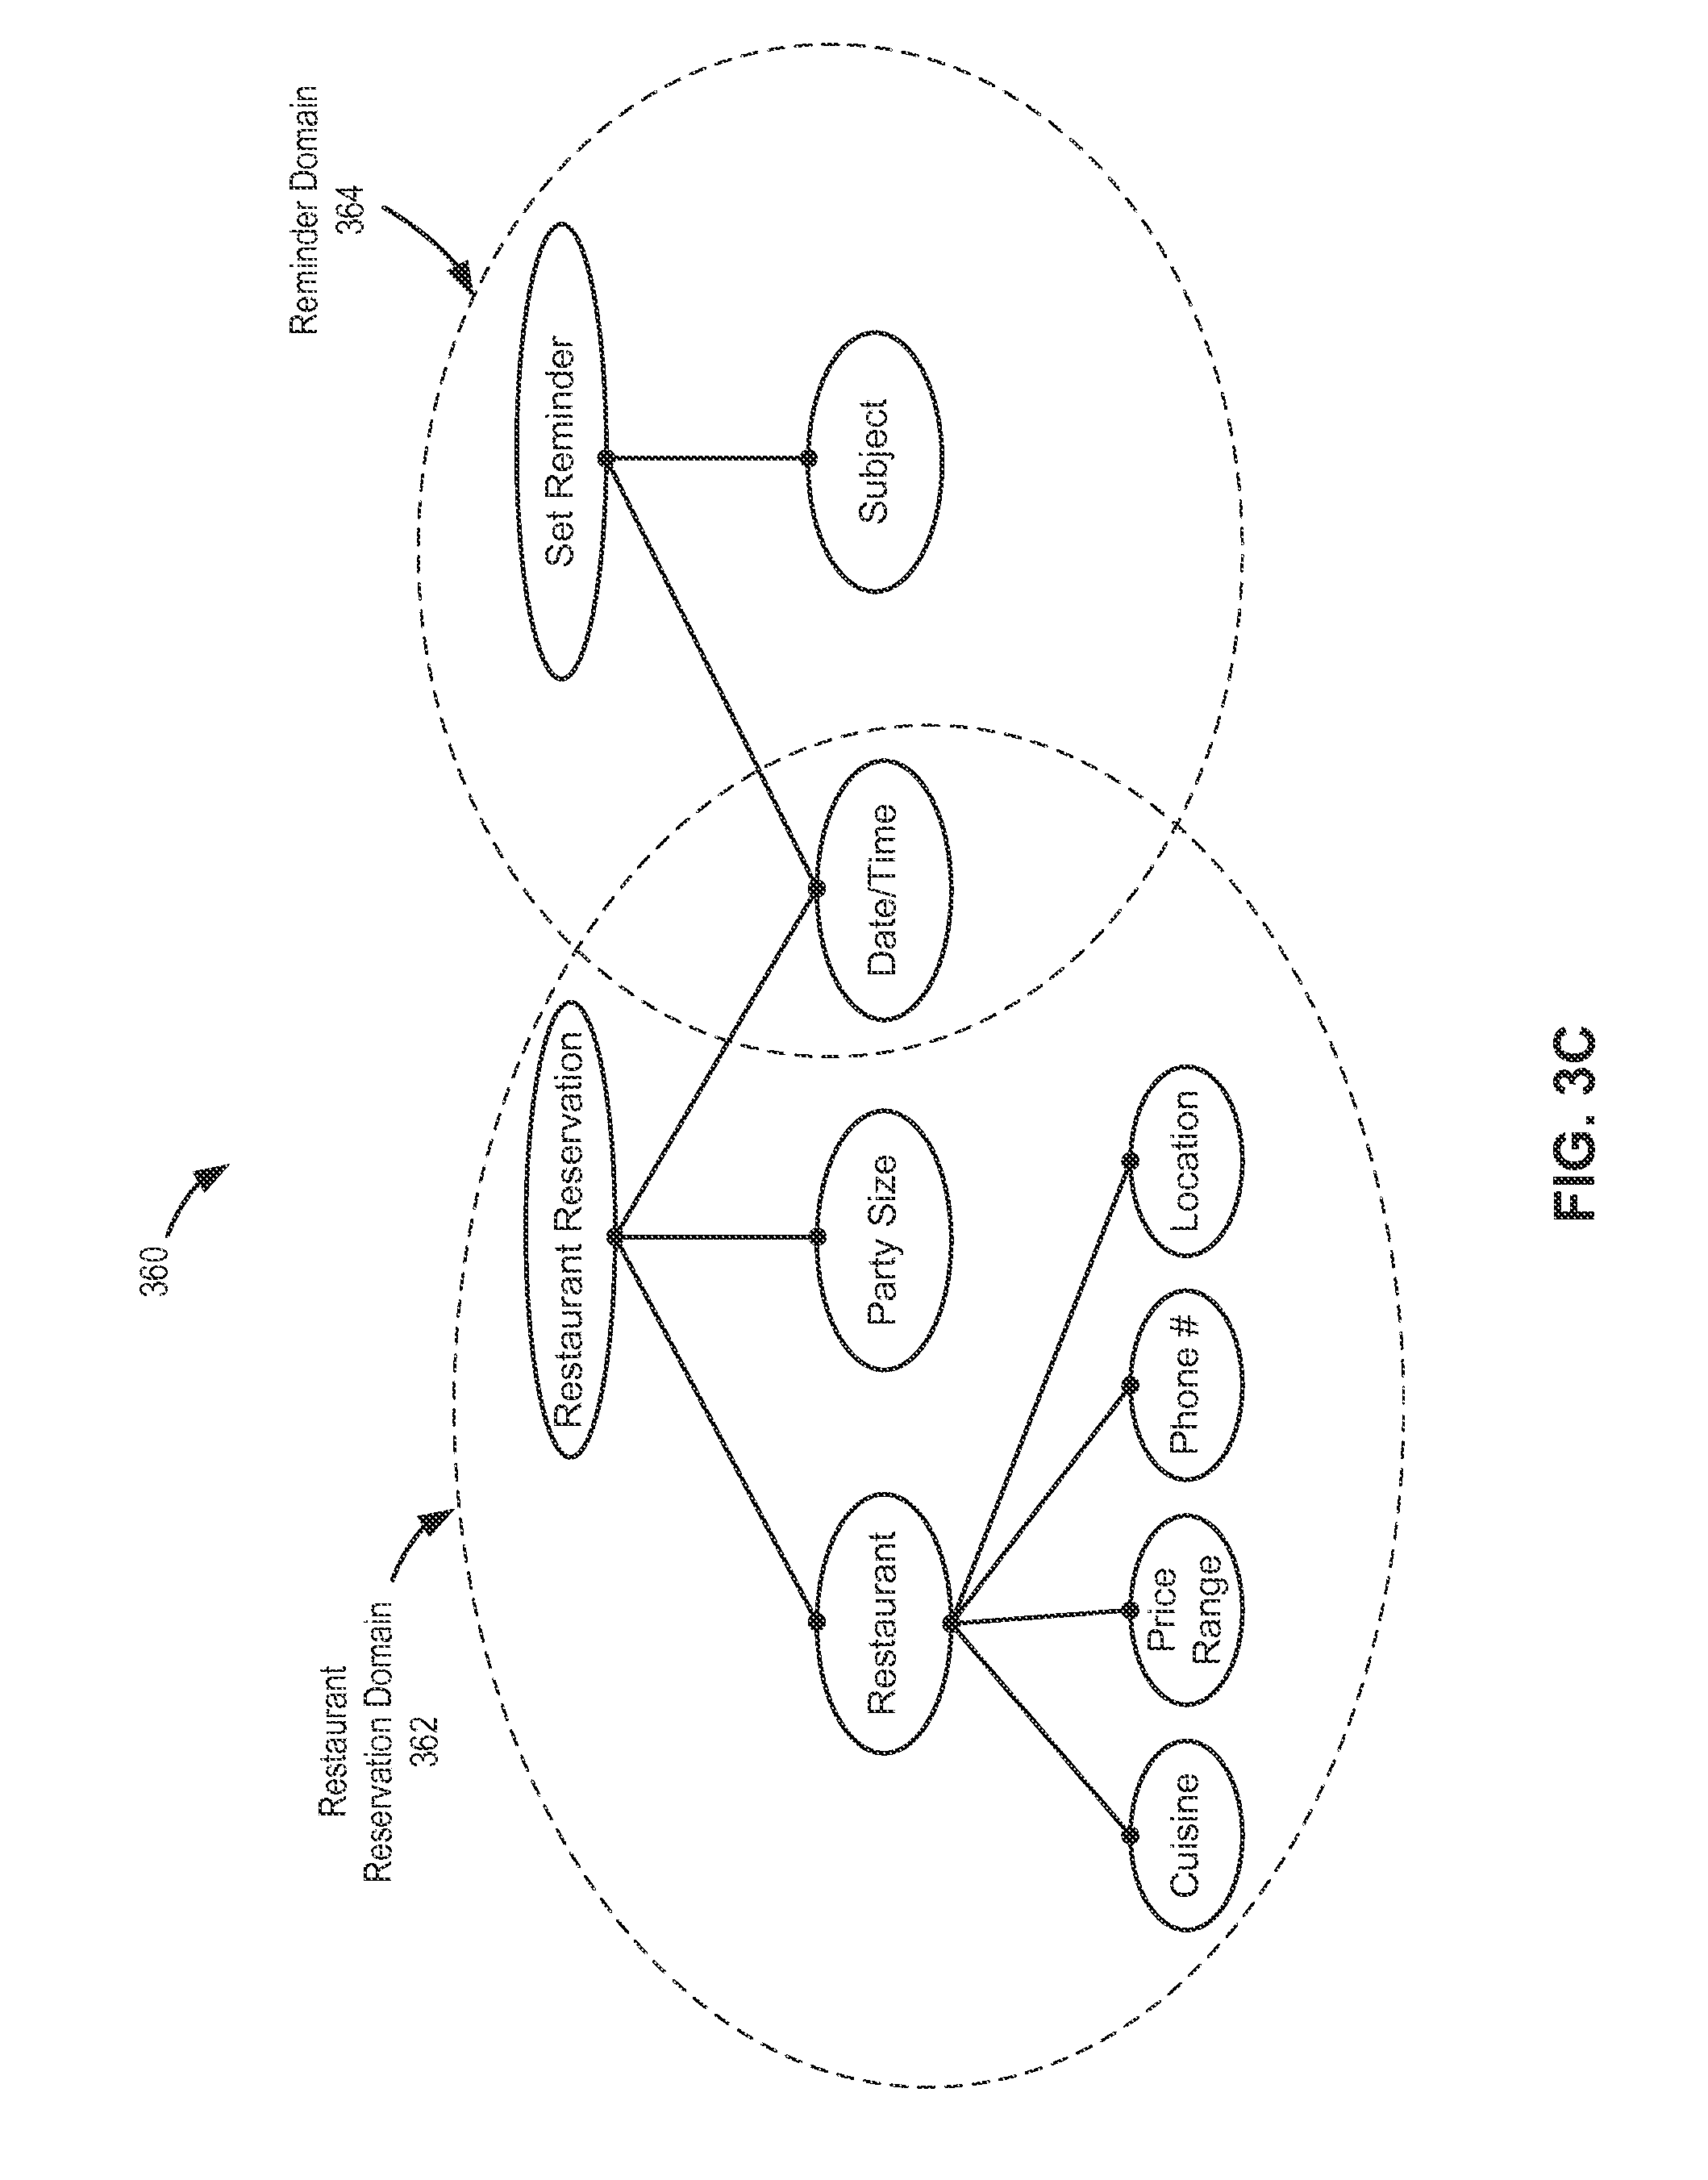 Us9633674b2 system and method for detecting errors in interactions with a voice based digital assistant patents